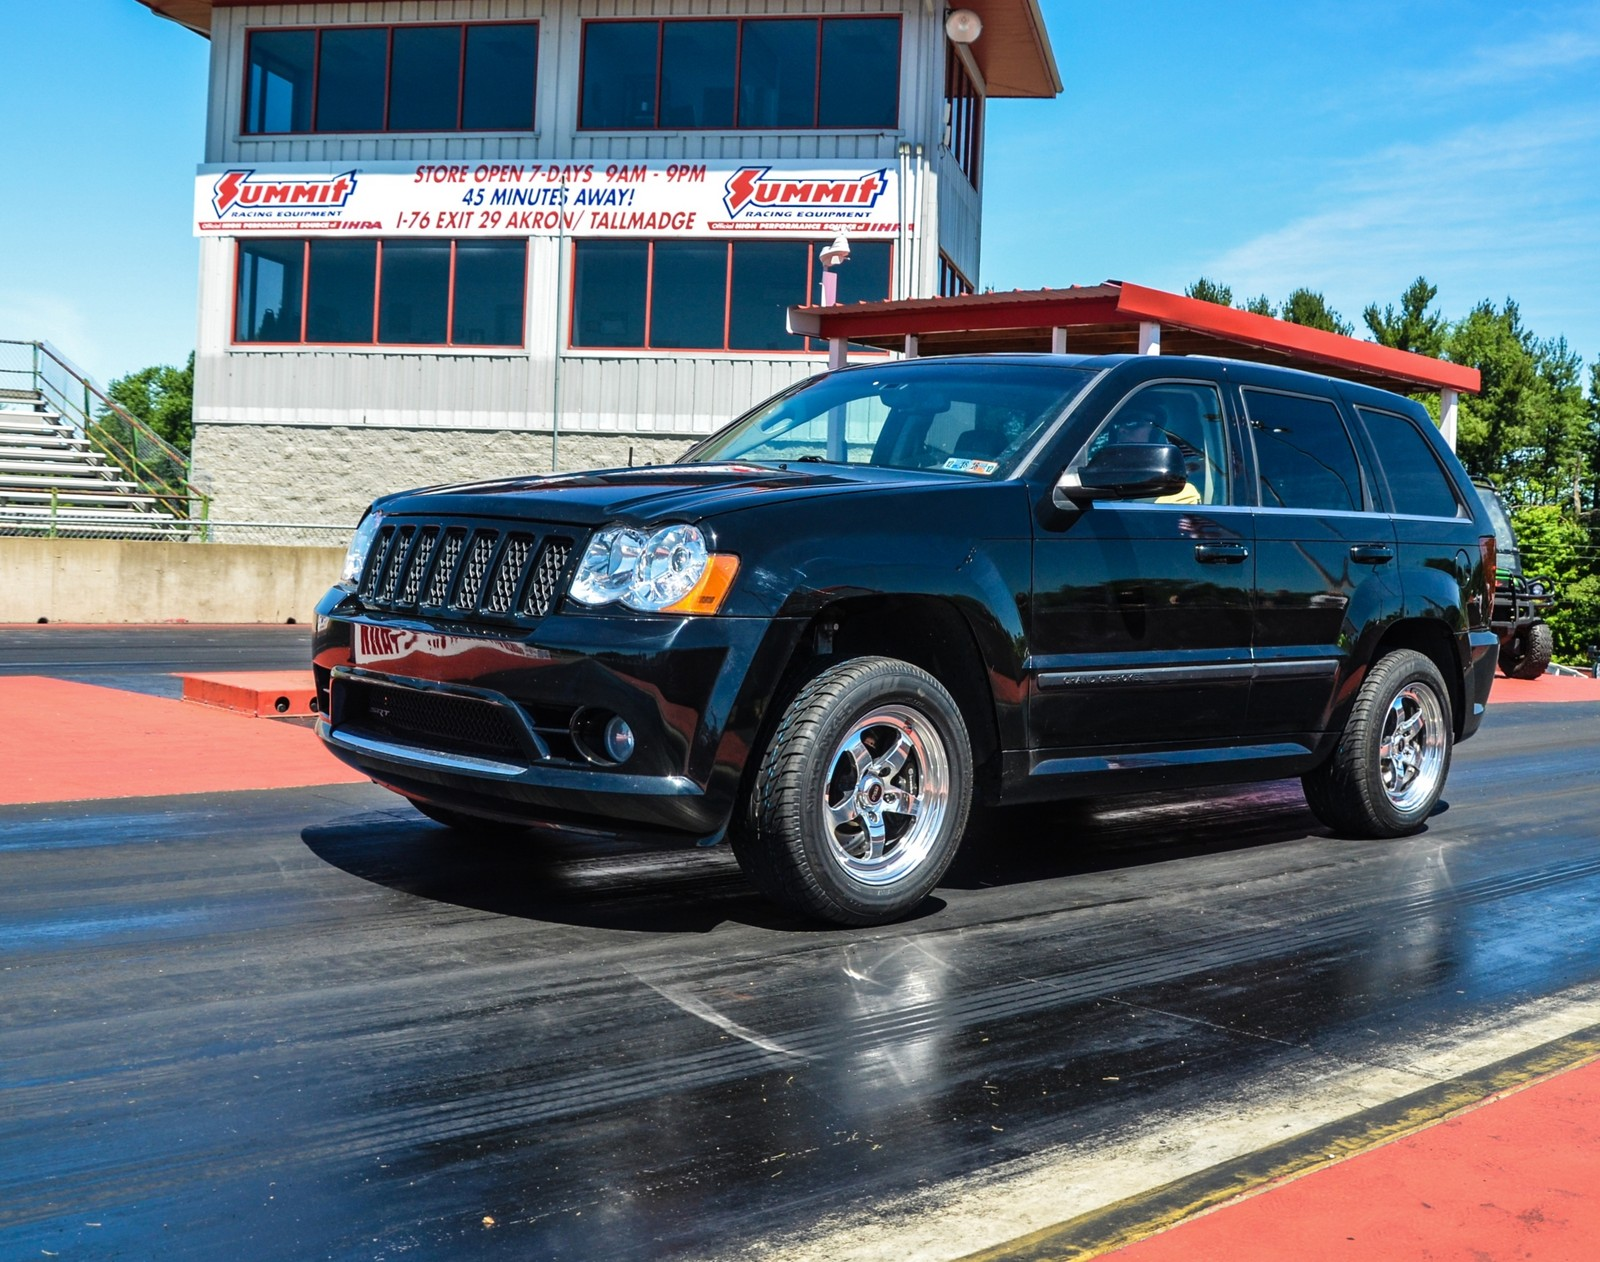 Black 2008 Jeep Cherokee SRT8